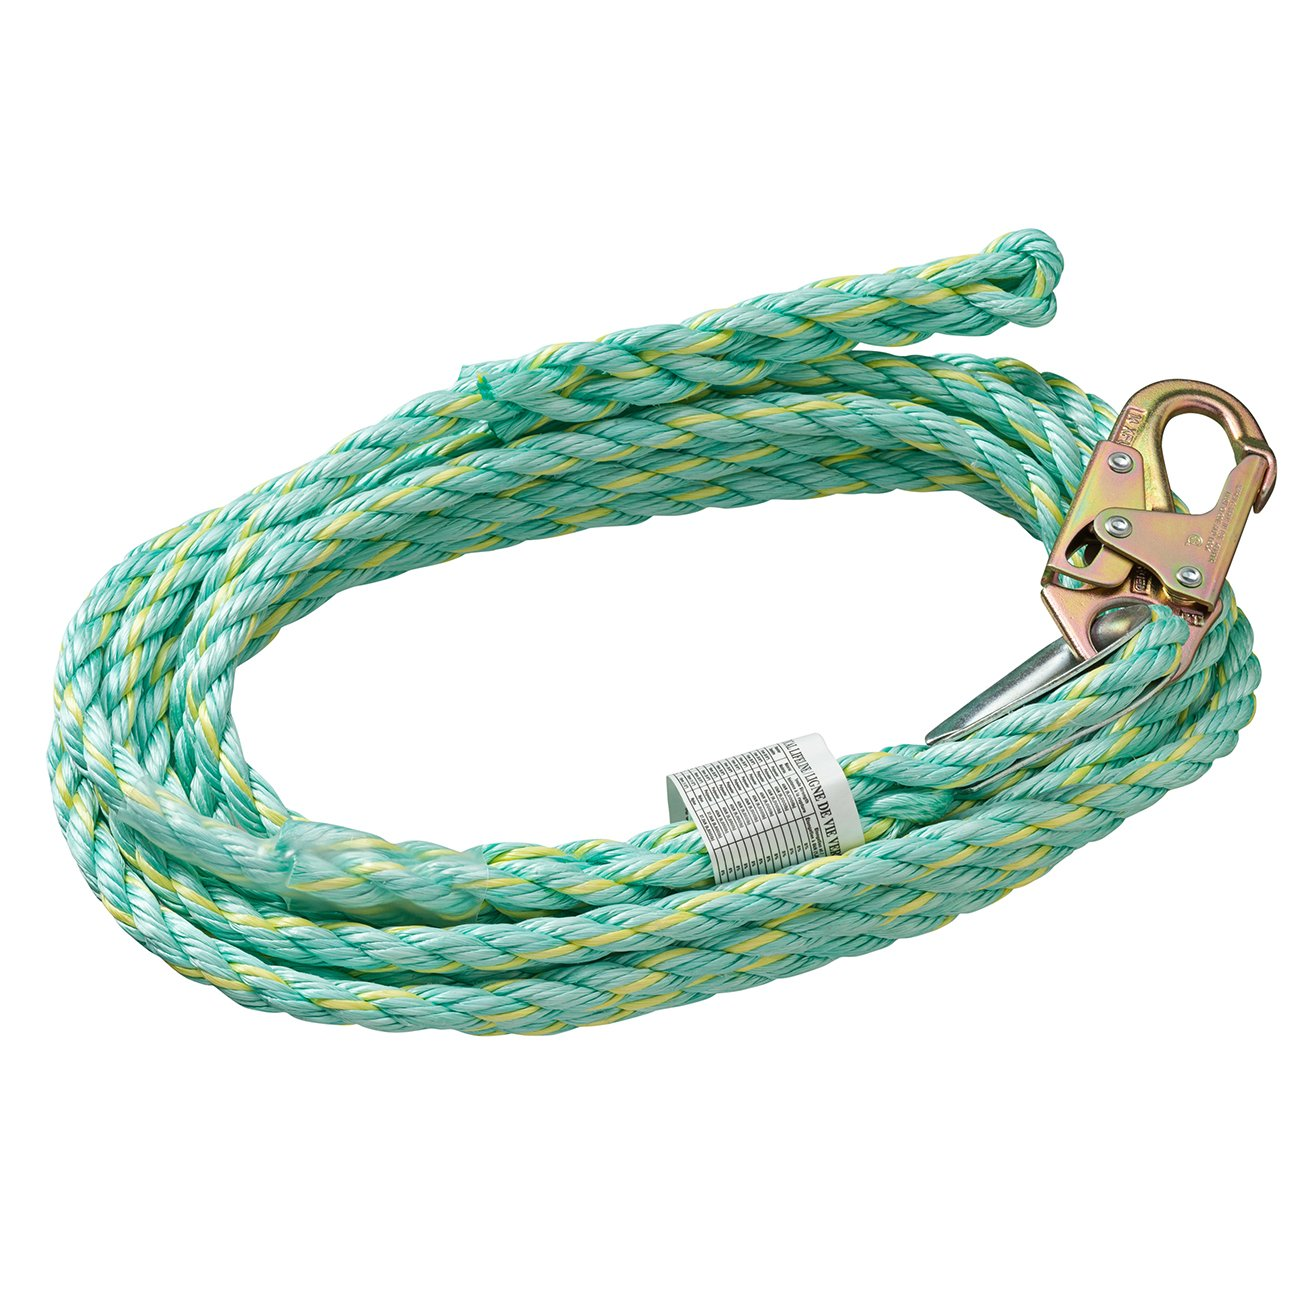 Peakworks Fall Protection V84014025 Vertical Lifeline Rope with Back Splice and Snap Hook , 25 ft. Length, Green